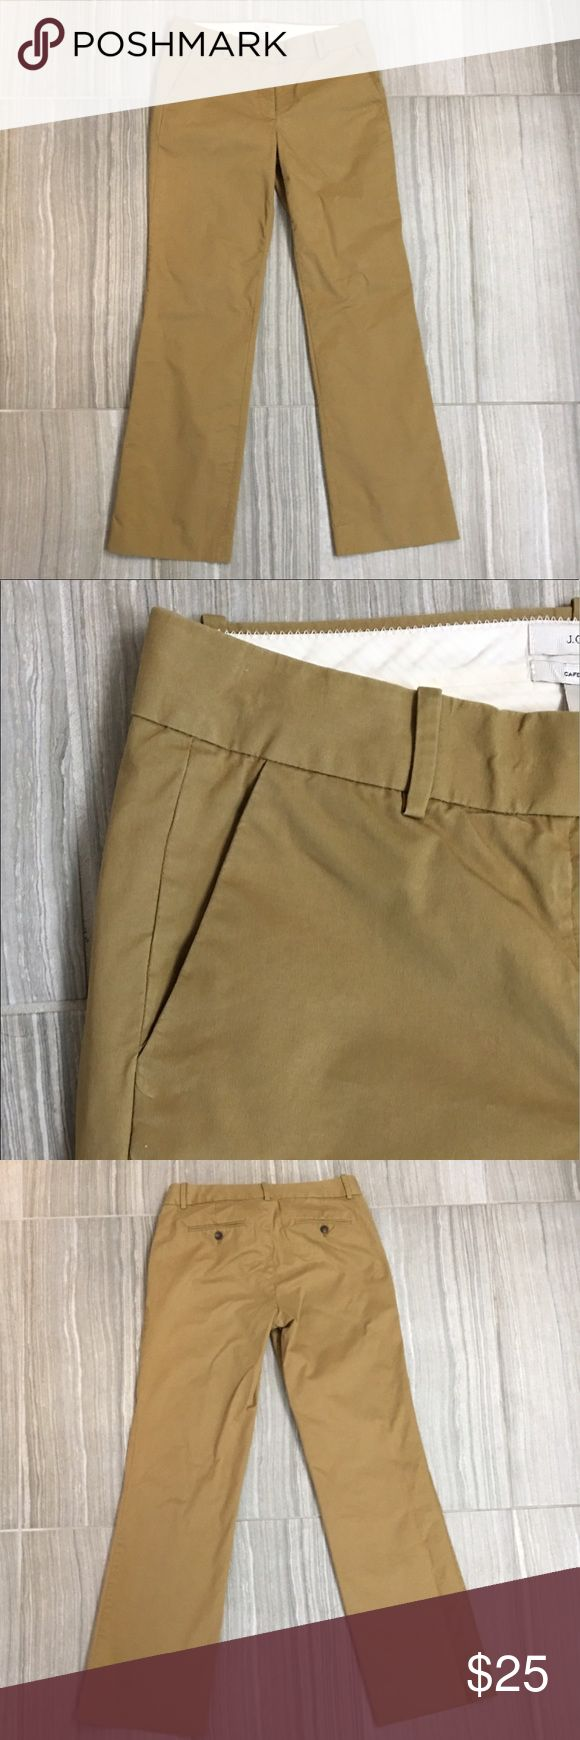 """J Crew Cafe Trouser Size 4 J Crew Cafe Trouser-Size 4. Excellent used condition. No holes, marks, stains, rips or tears. 32"""" inseam. 9"""" rise. 9 1/4"""" wide at ankle. J. Crew Pants"""